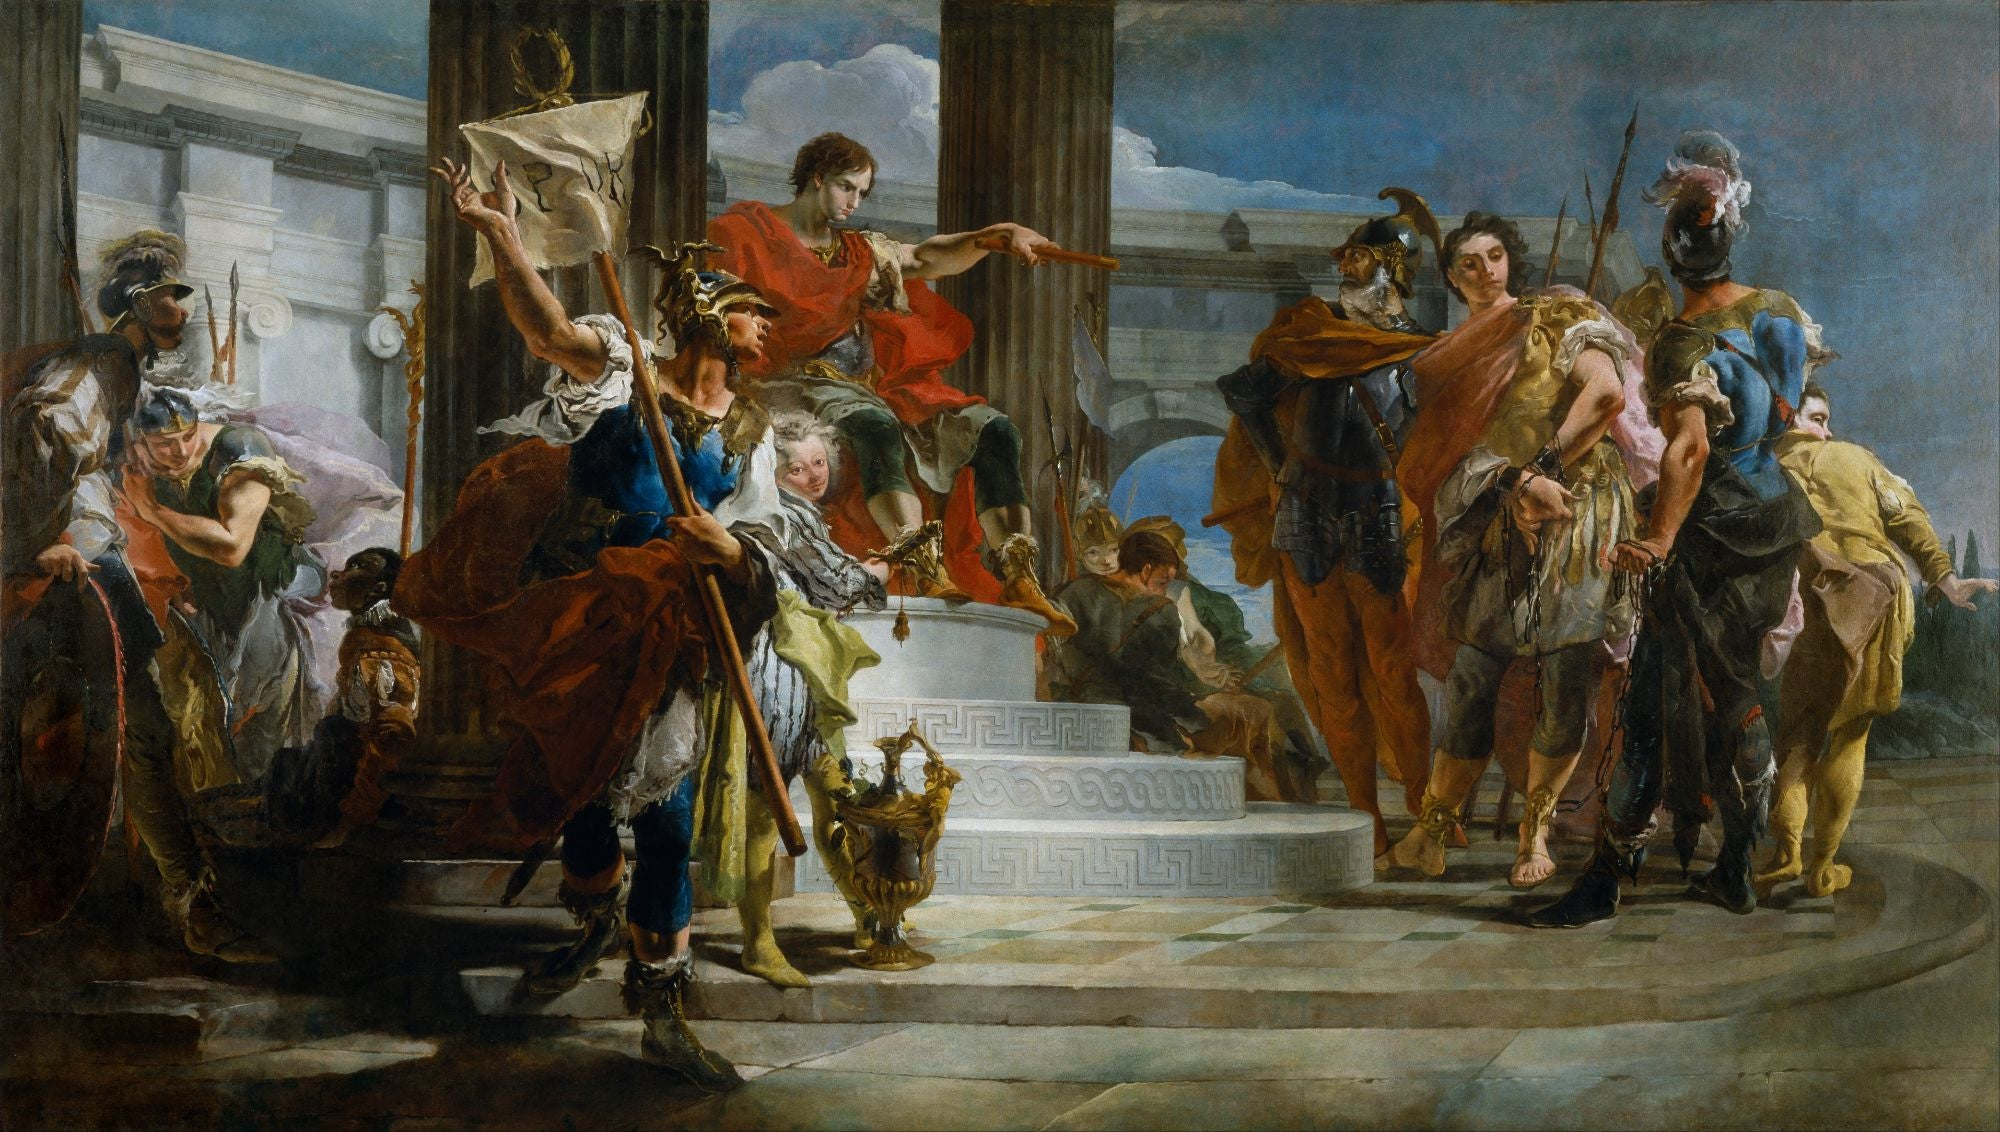 Giovanni Battista Tiepolo | Buy Posters, Frames, Canvas, Digital Art & Large Size Prints Of The Famous Old Master's Artworks